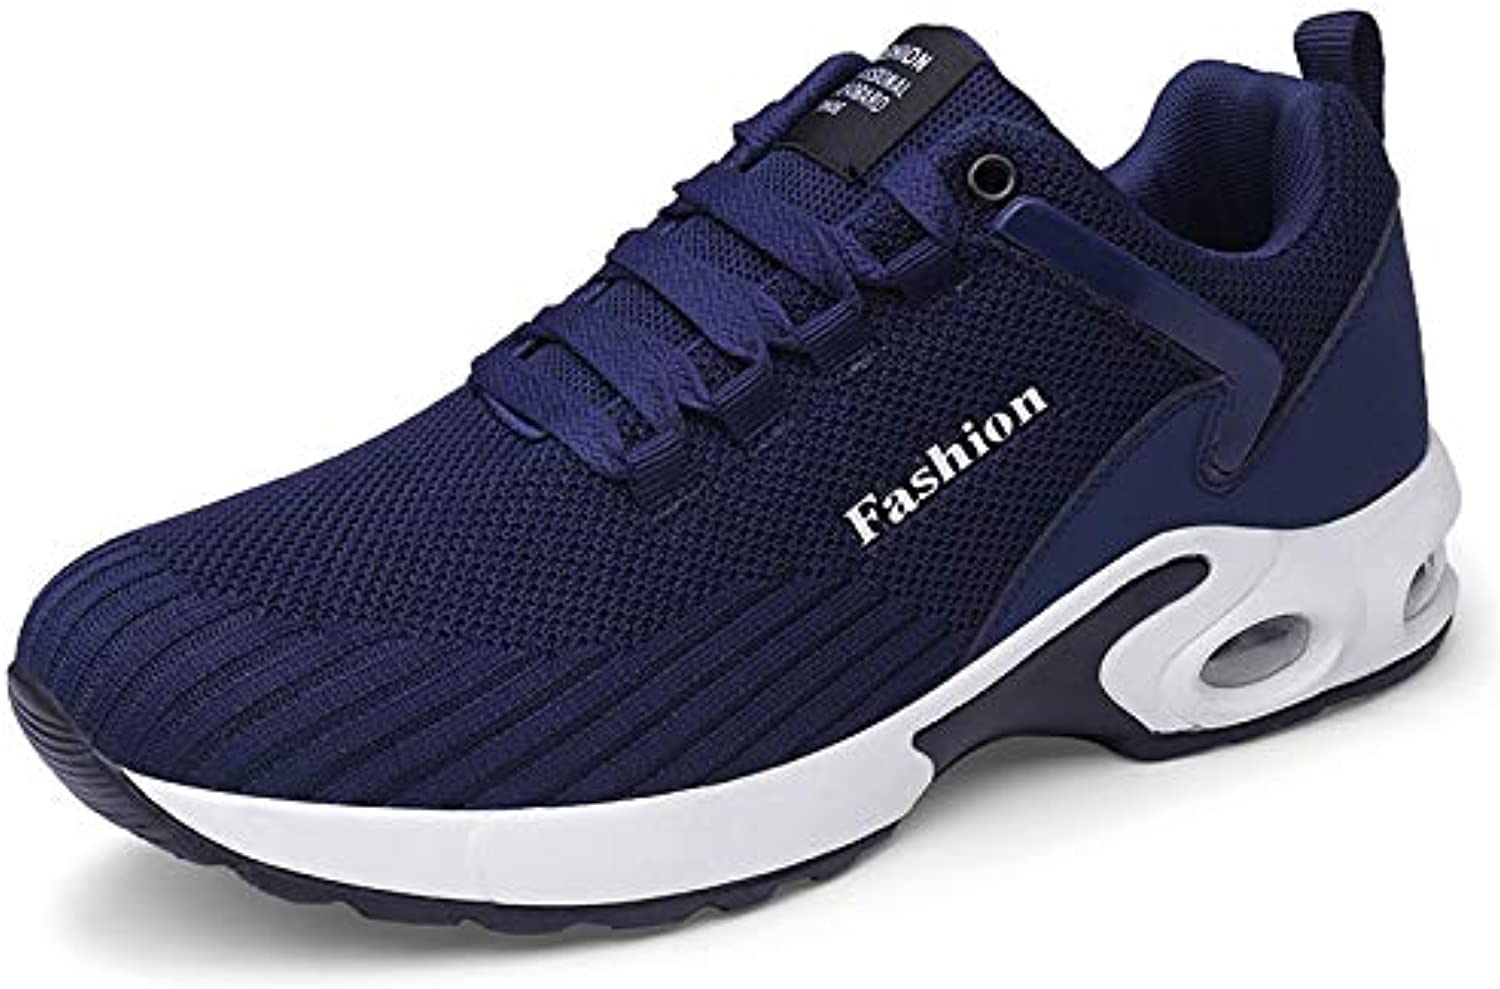 LOVDRAM Men'S shoes Autumn New Men'S shoes Couple Running shoes Women'S Lightweight Large Size Cushion Cushioning Sports Wind Casual shoes